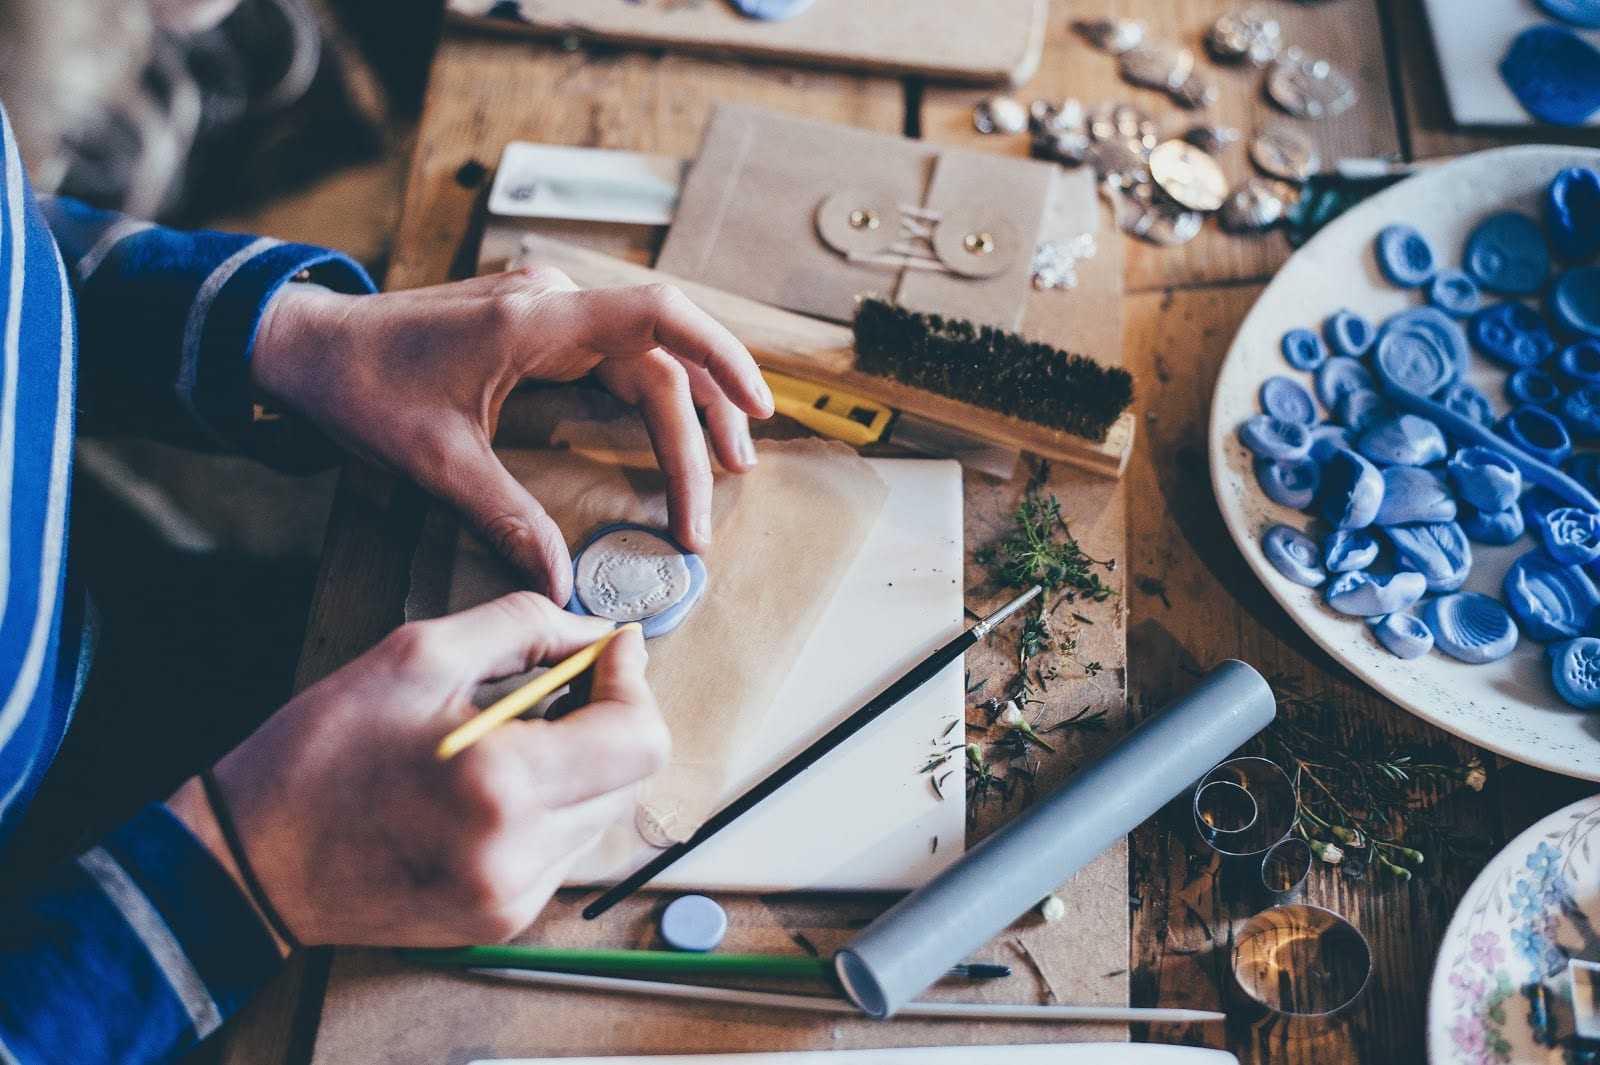 Calling All Crafters: You Need These Things In 2019